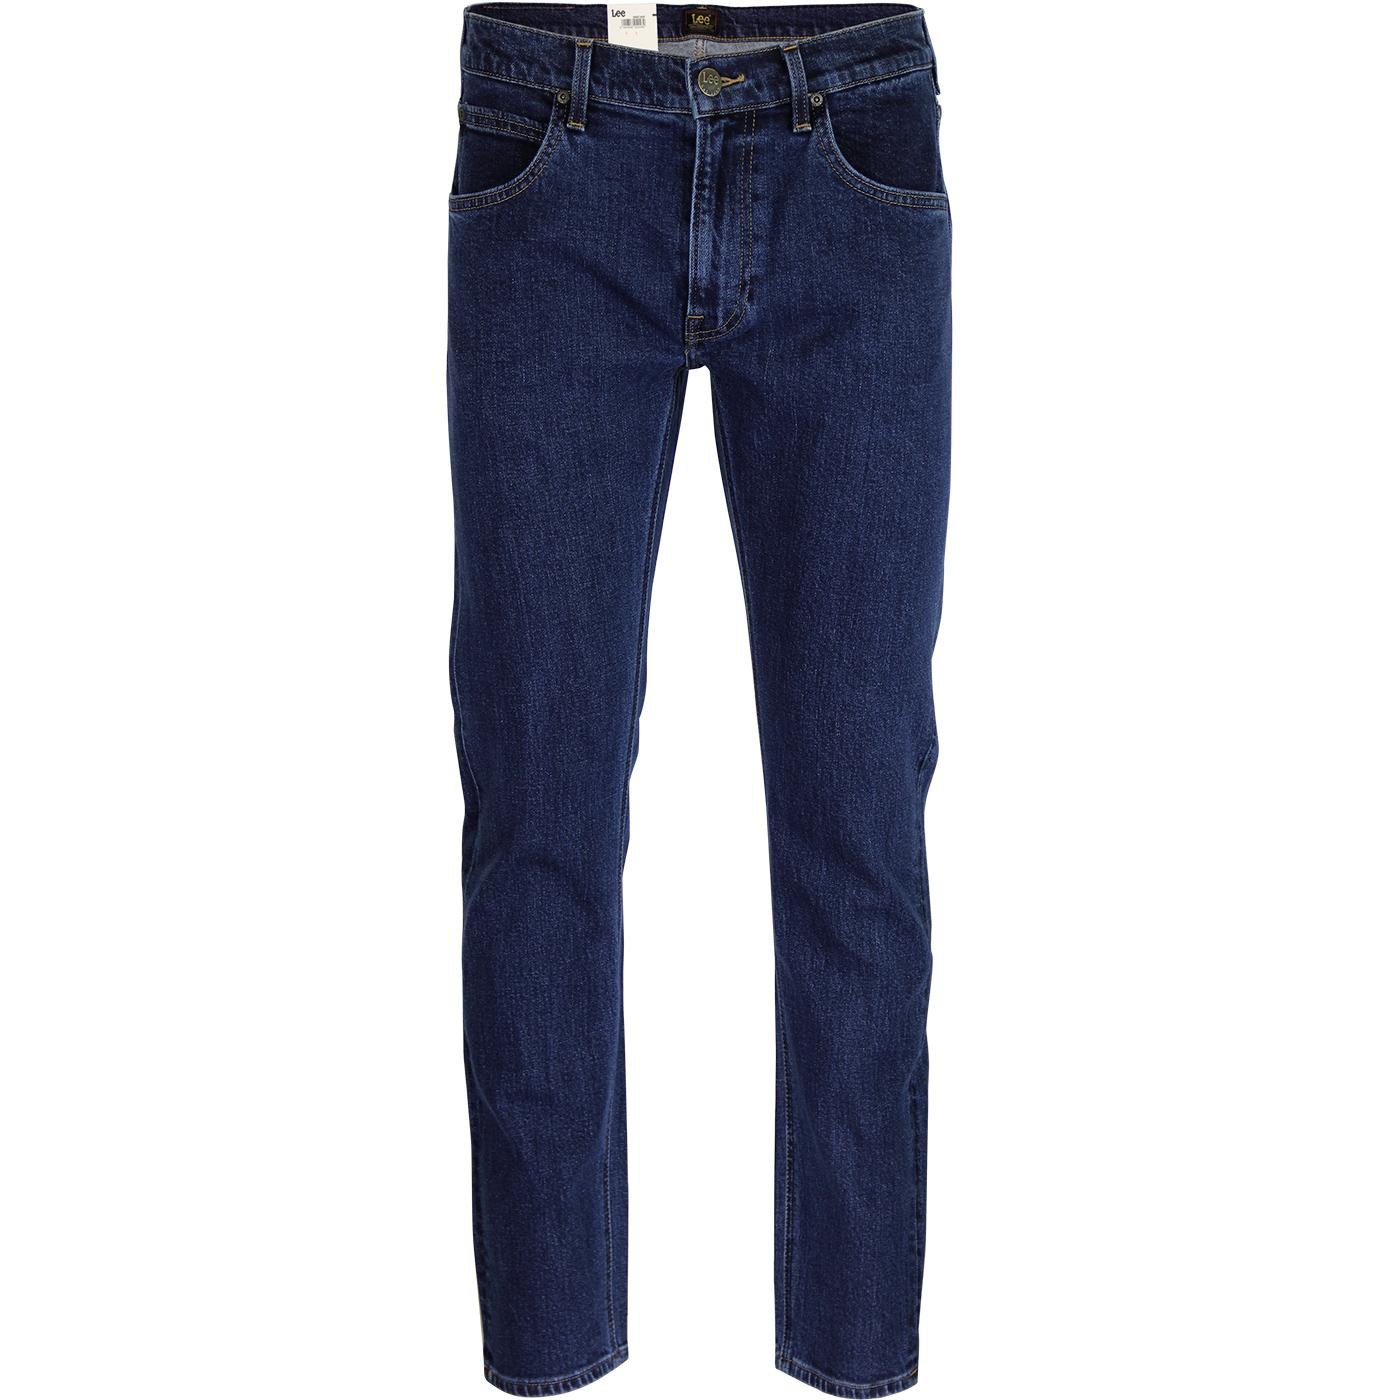 Daren LEE Regular Slim Mod Denim Jeans DARK STONE